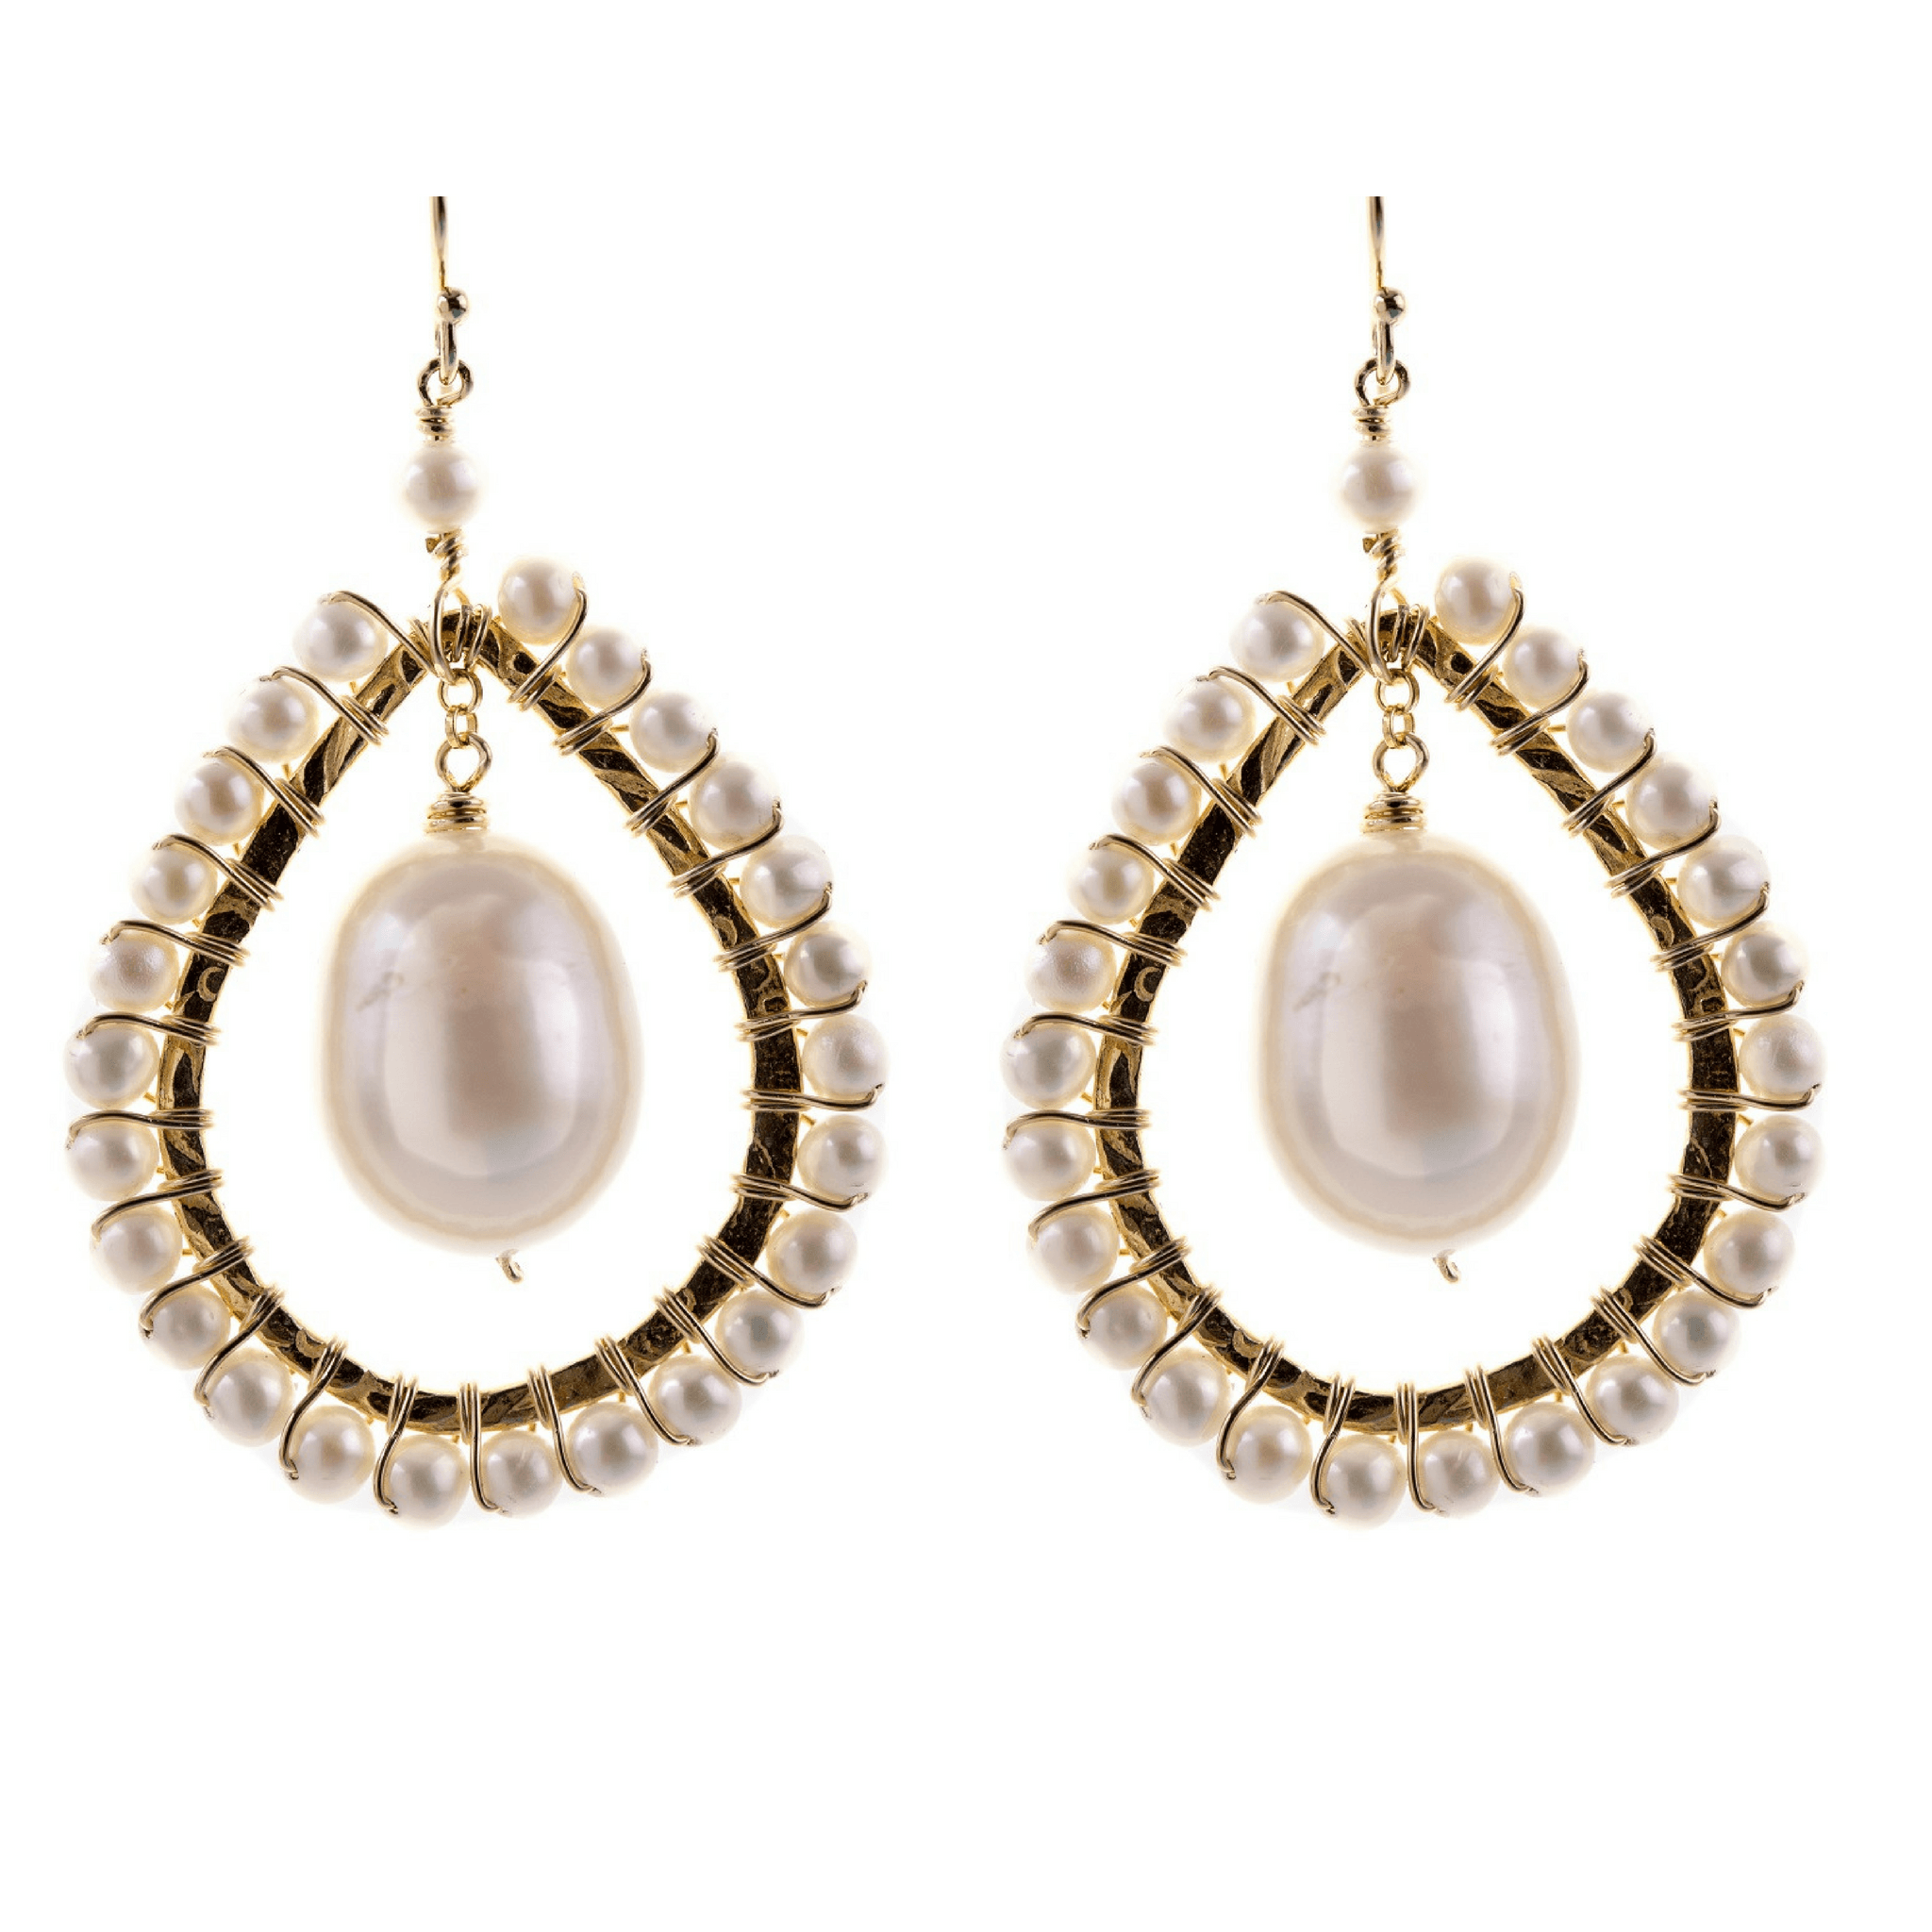 Large Tear Drop Earrings in Pearl - Karlas Jewelry & Gifts